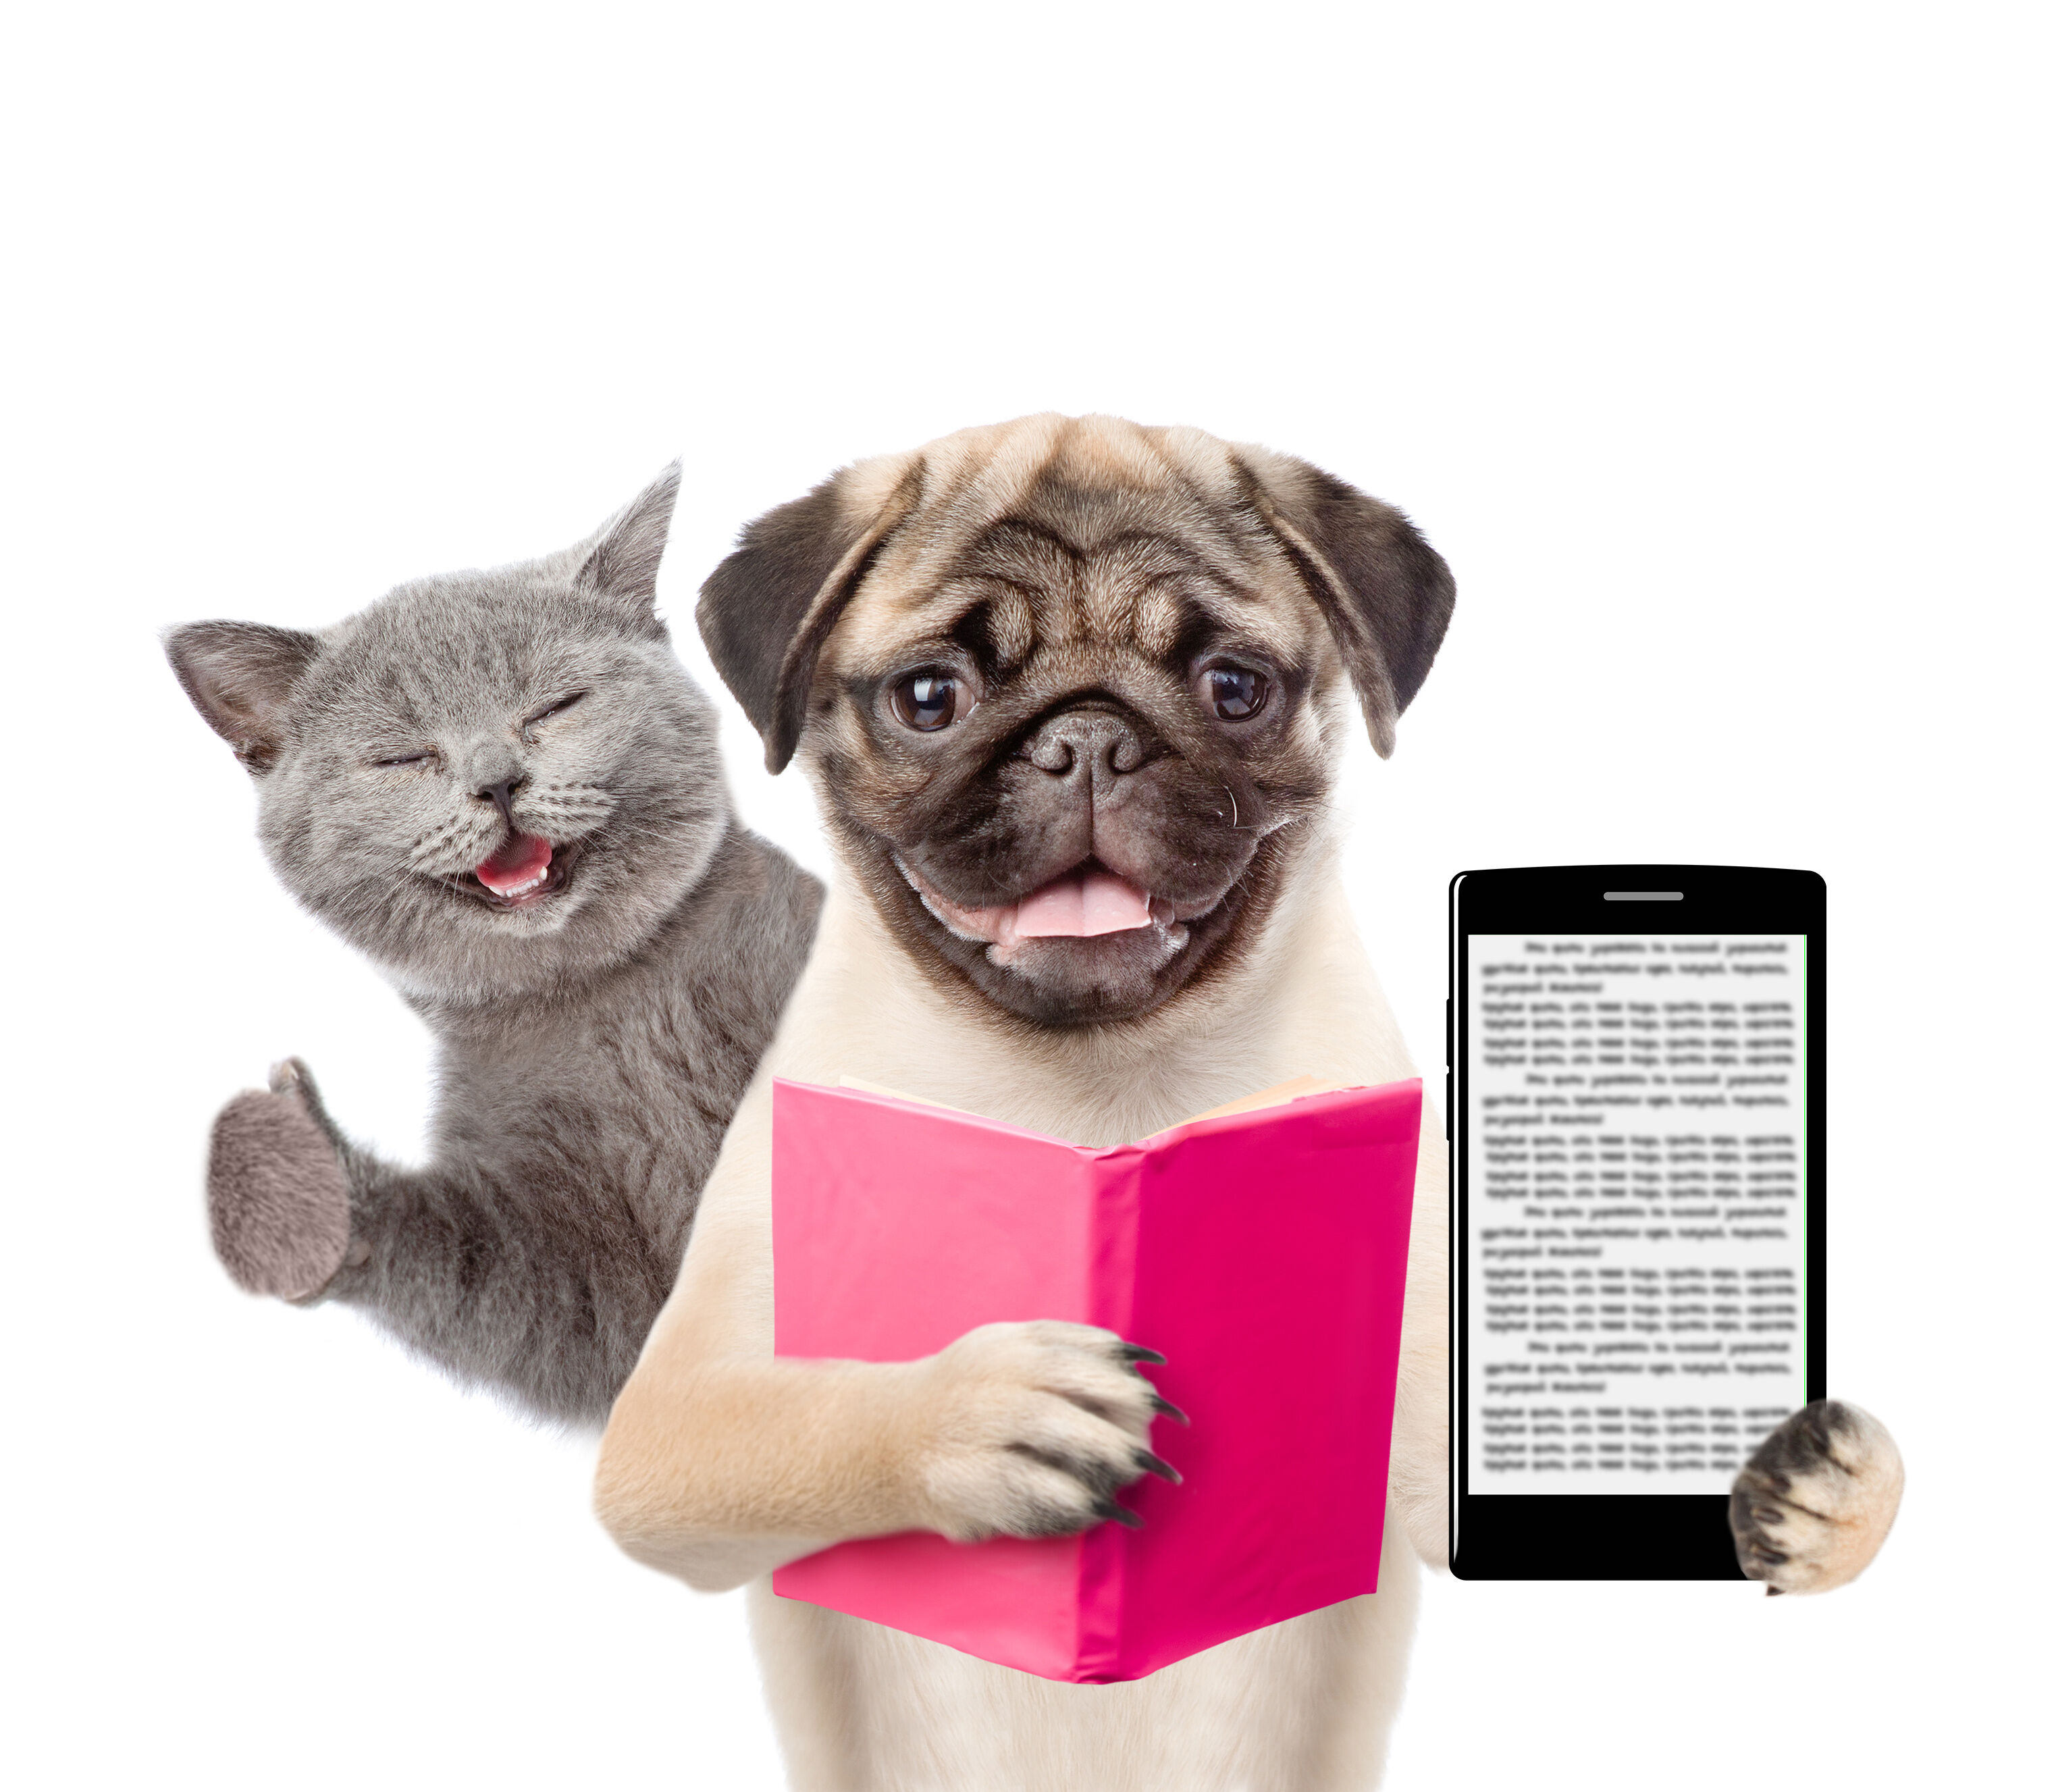 Cat and dog with a book